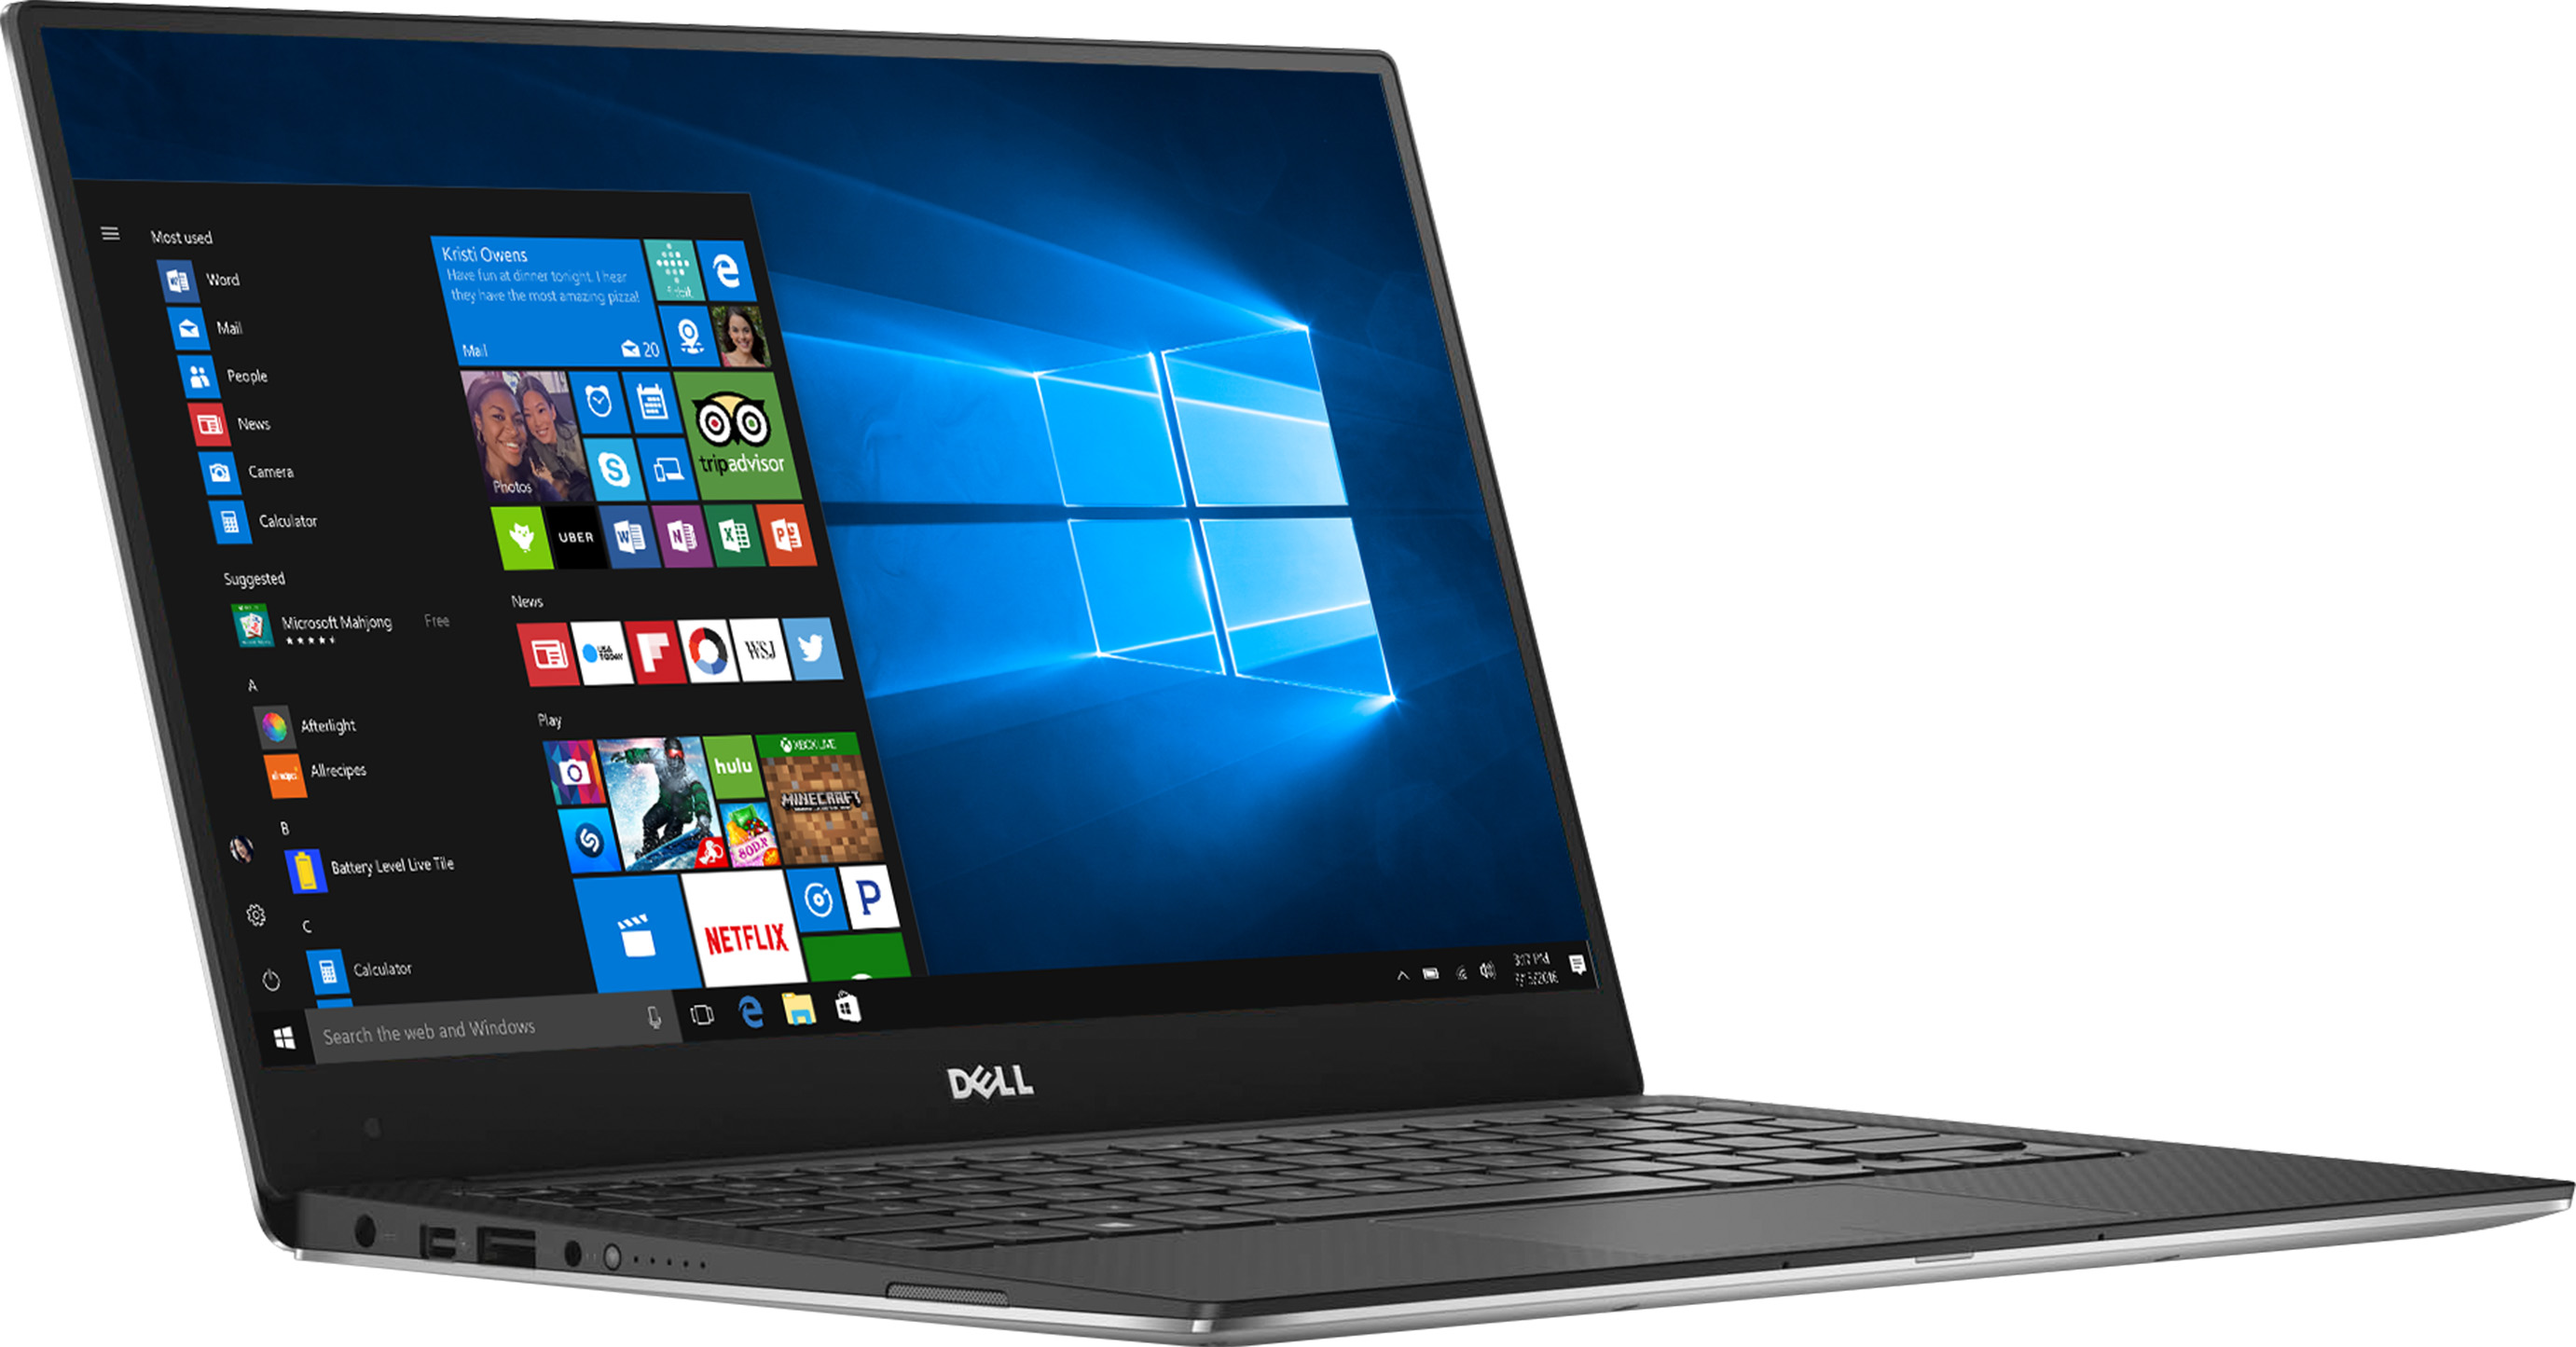 Dell XPS 13 9350-2007SLV Core i5 128GB Signature Edition Laptop